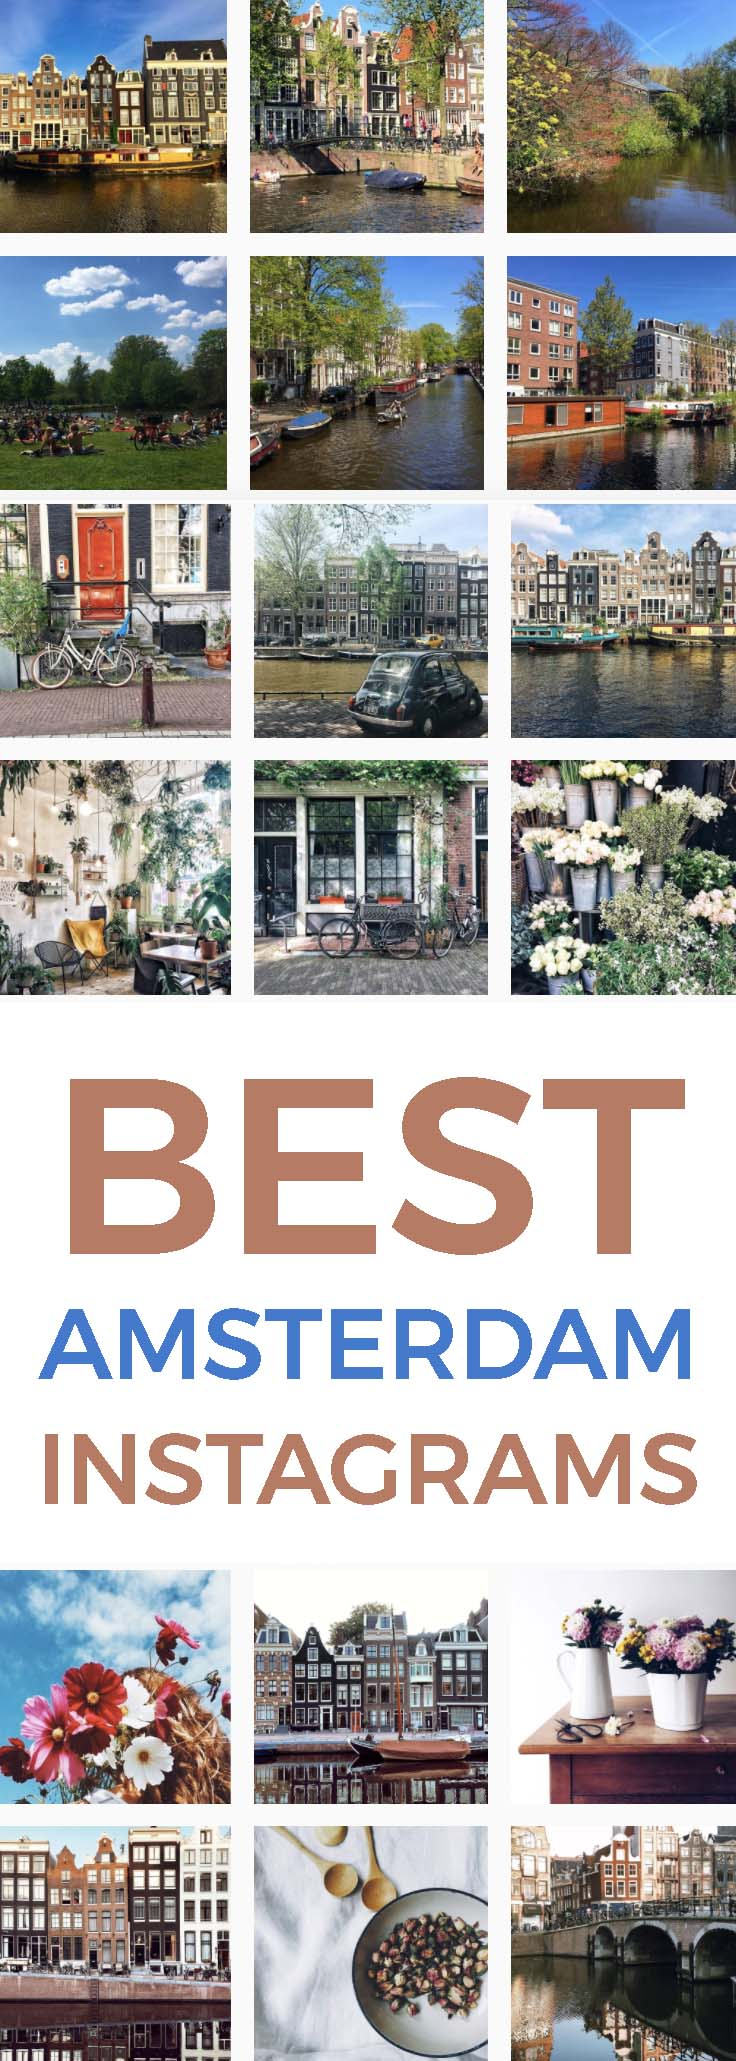 BEST AMSTERDAM INSTAGRAMS: I love Instagram, don't you? It is such a fun way to see images of places and things we love, whether we are near or far. Here are some of my favorite Amsterdam Instagram accounts.